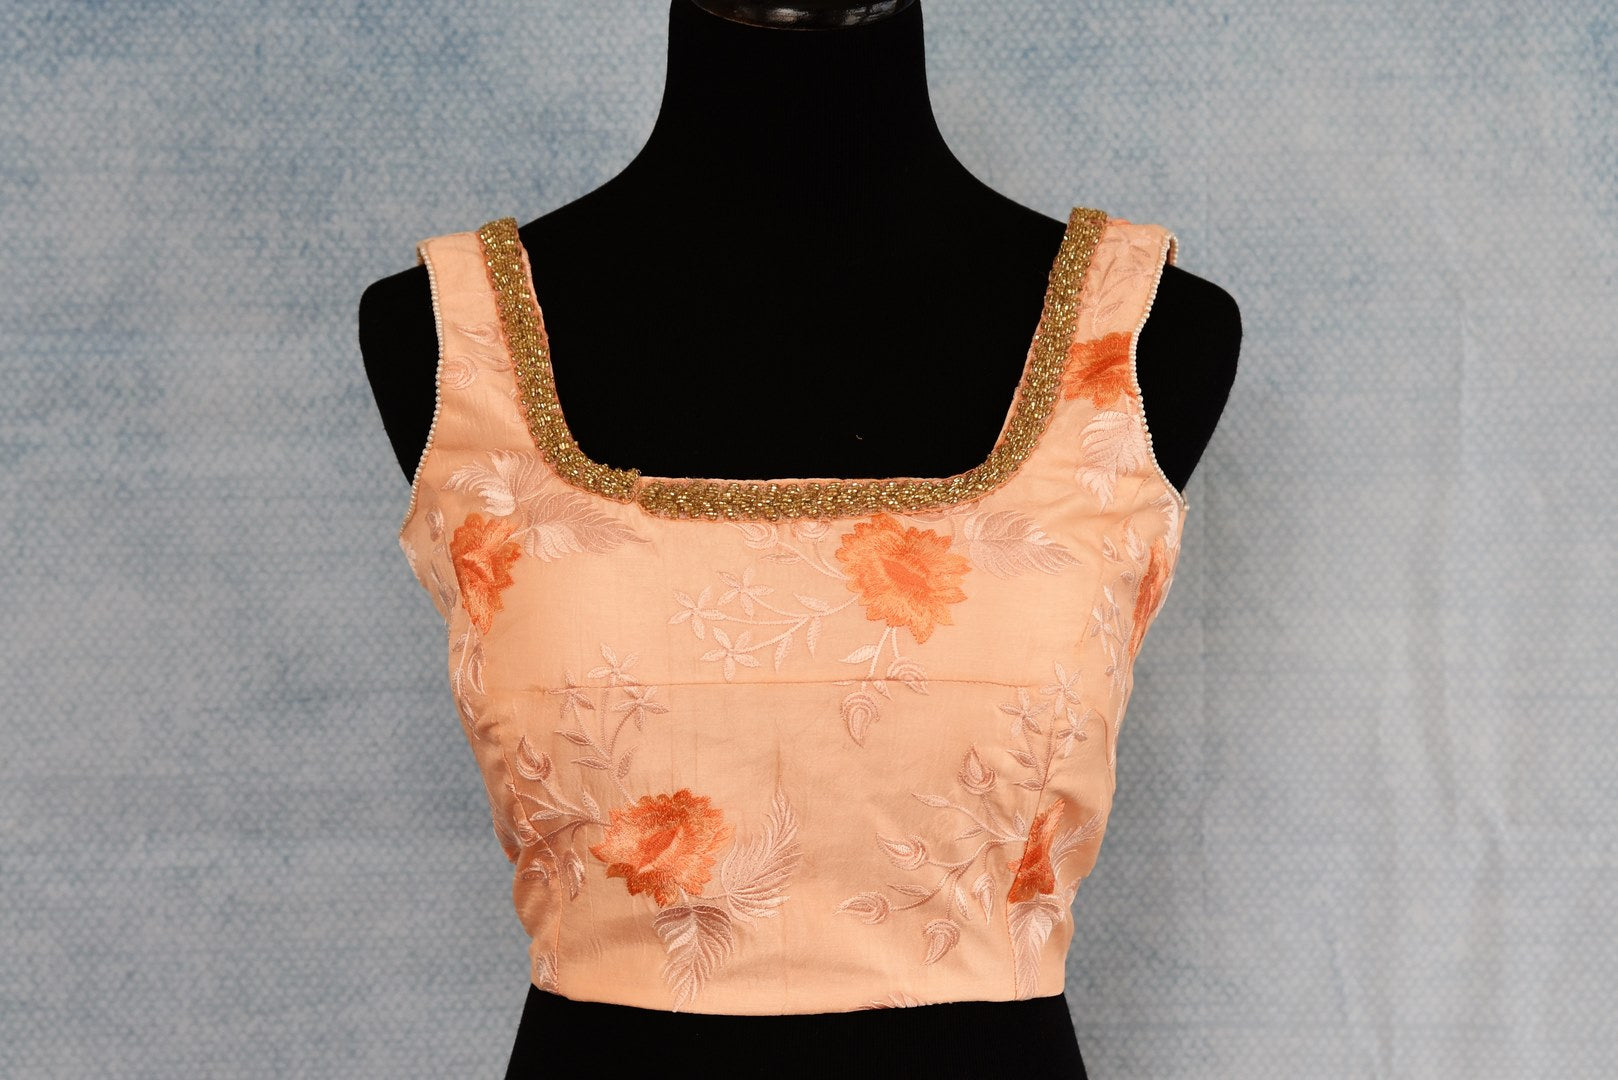 Shop peach thread embroidery silk sleeveless saree blouse online in USA. The blouse is a perfect match to add brightness to your Indian sarees. Shop beautiful Indian designer saree blouses in USA from Pure Elegance exclusive Indian clothing store in USA or shop online.-full view